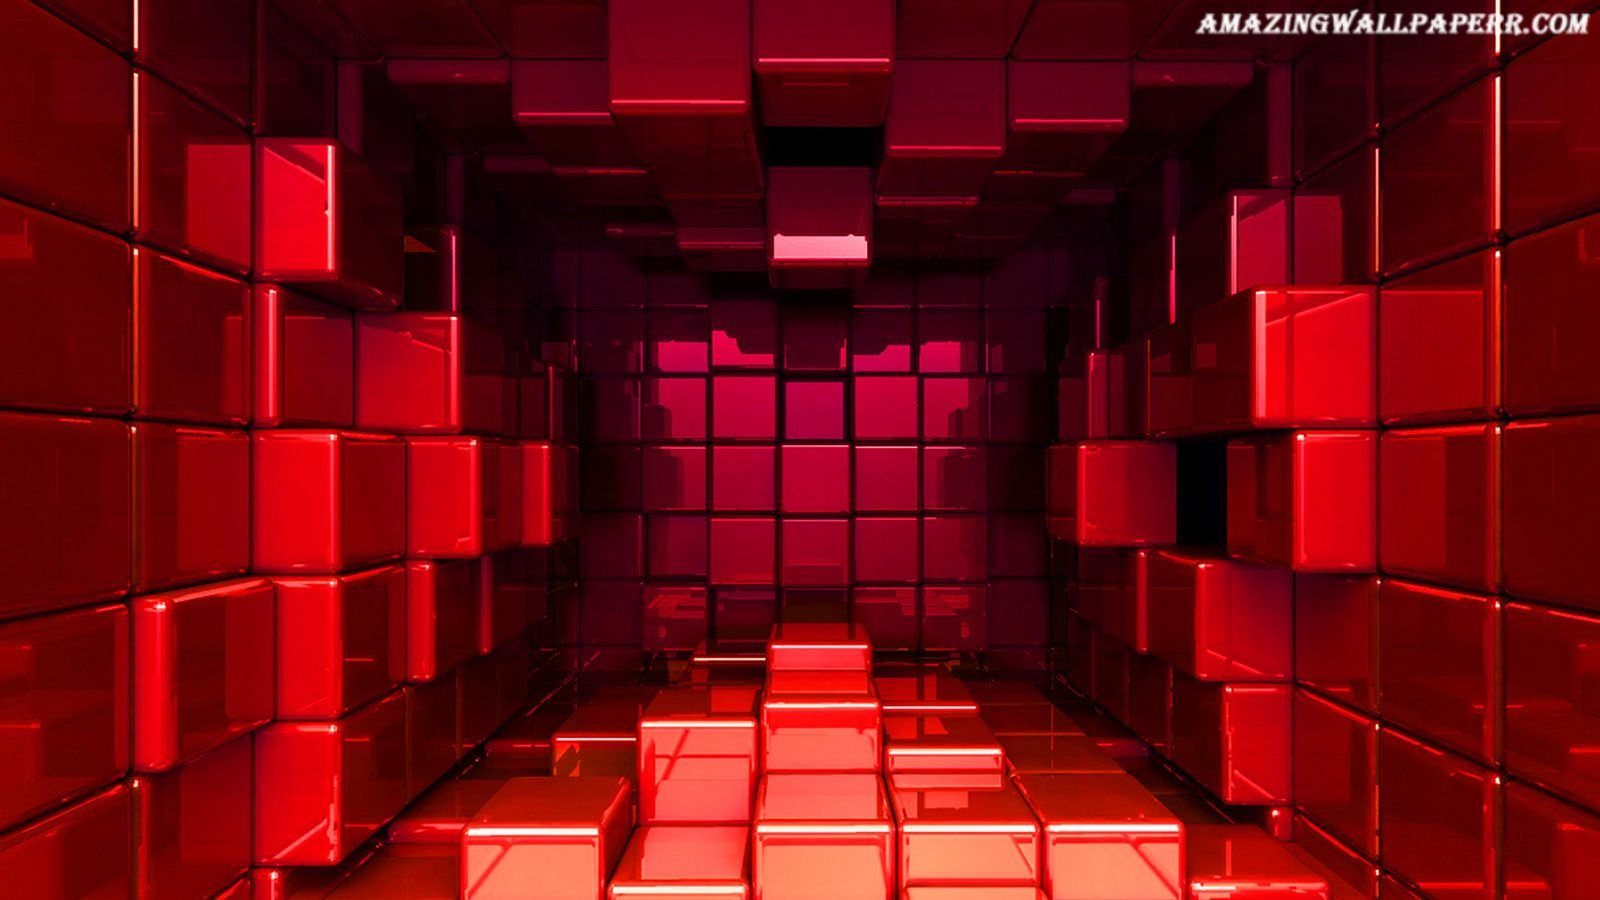 Red Block Wallpaper Widescreen Wallpaper Unusual Wallpaper 3d Wallpaper